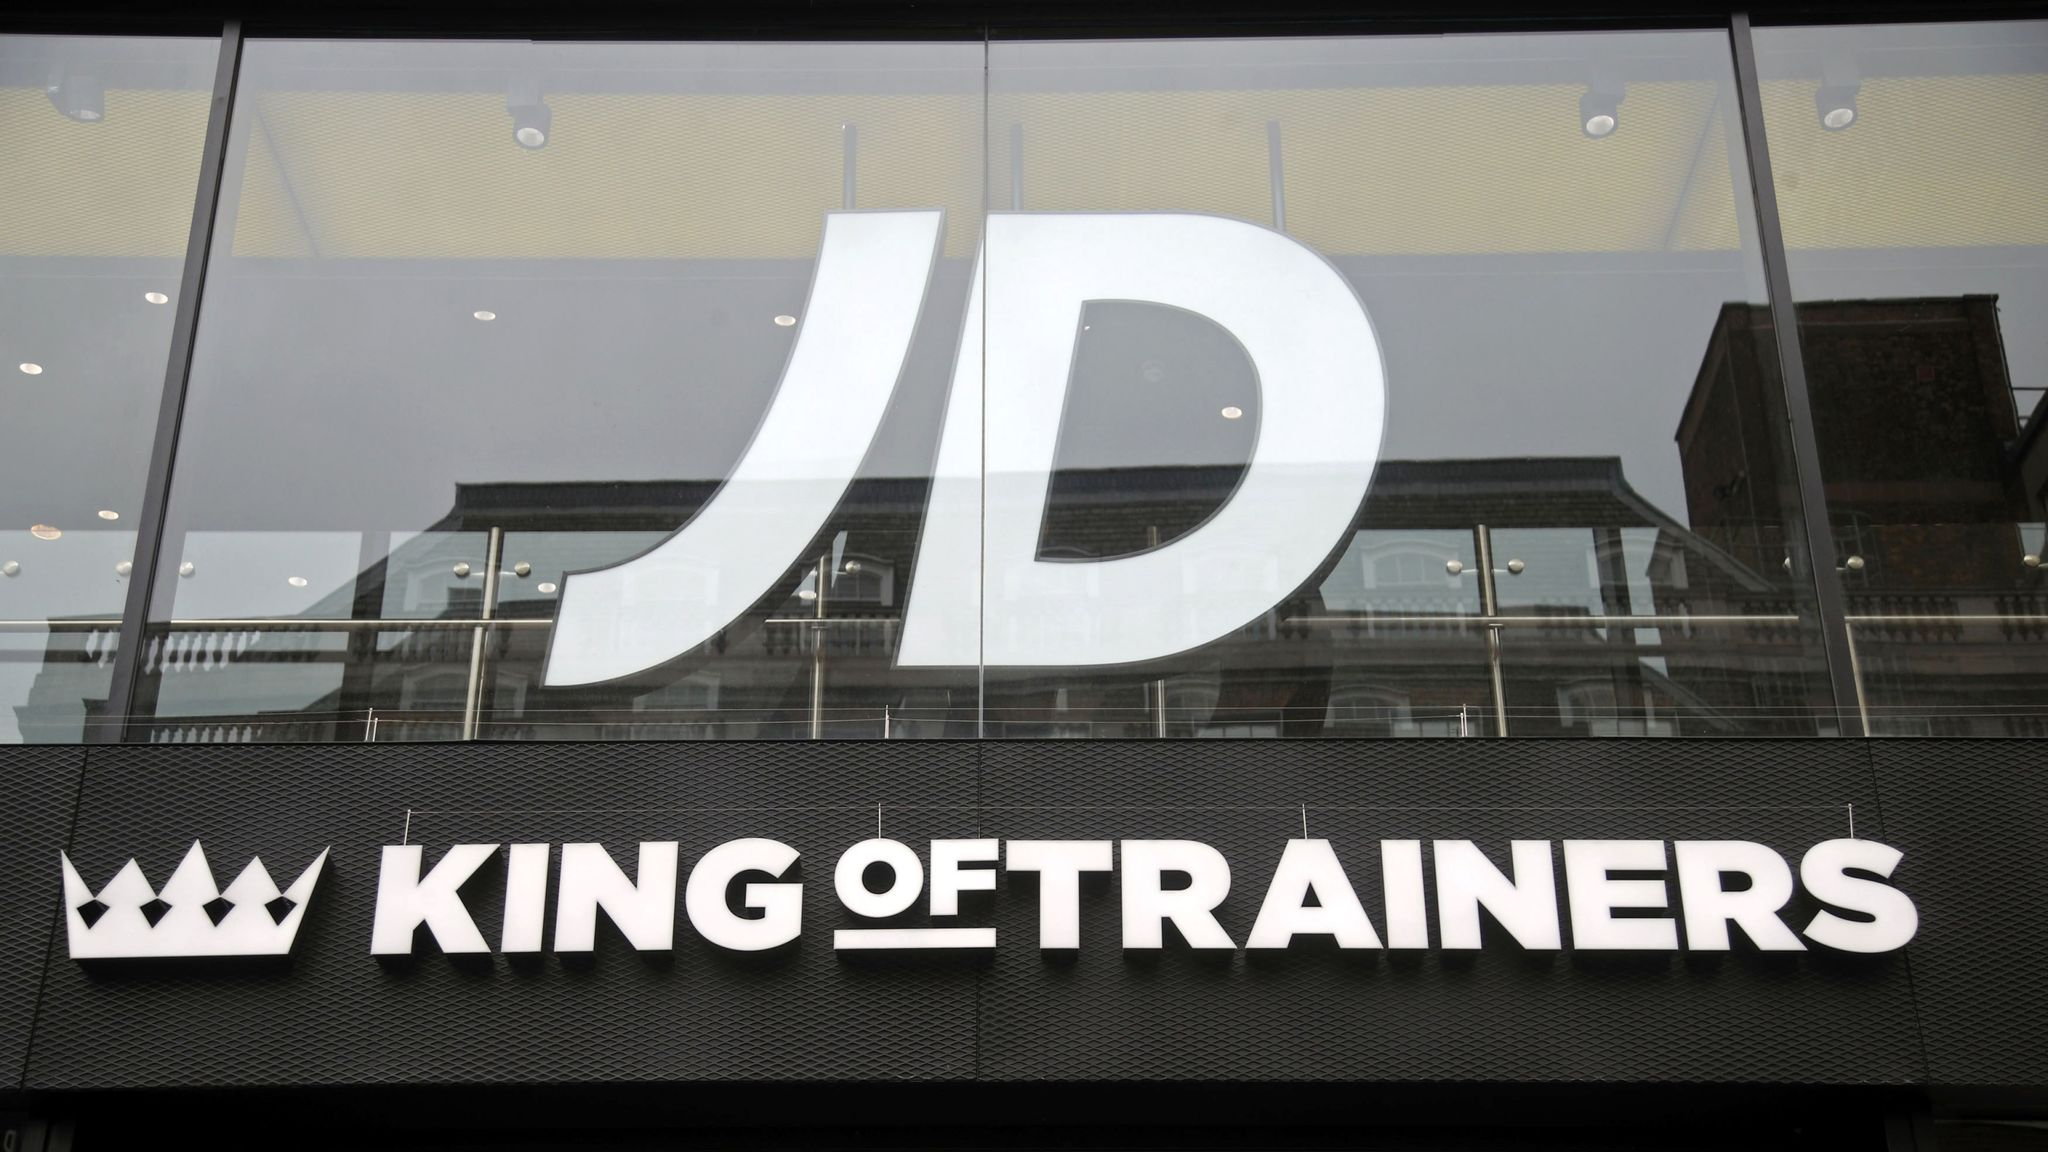 Jd Sports Jd Sports Defies High Street Gloom With Robust Sales Growth